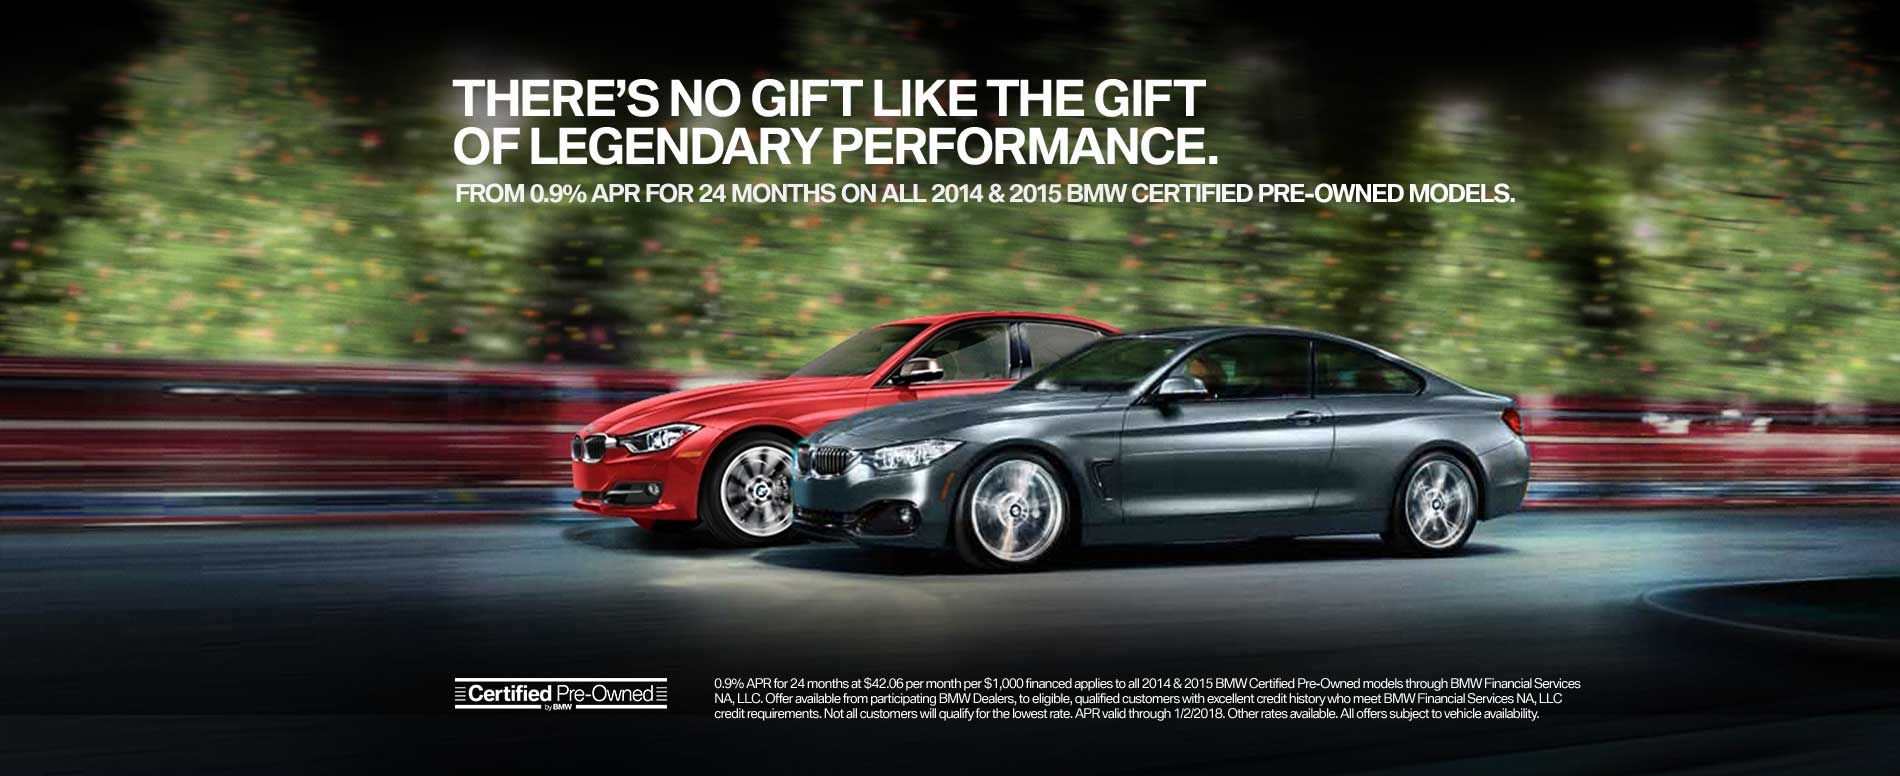 BMW's Latest Certified Pre-Owned Offer